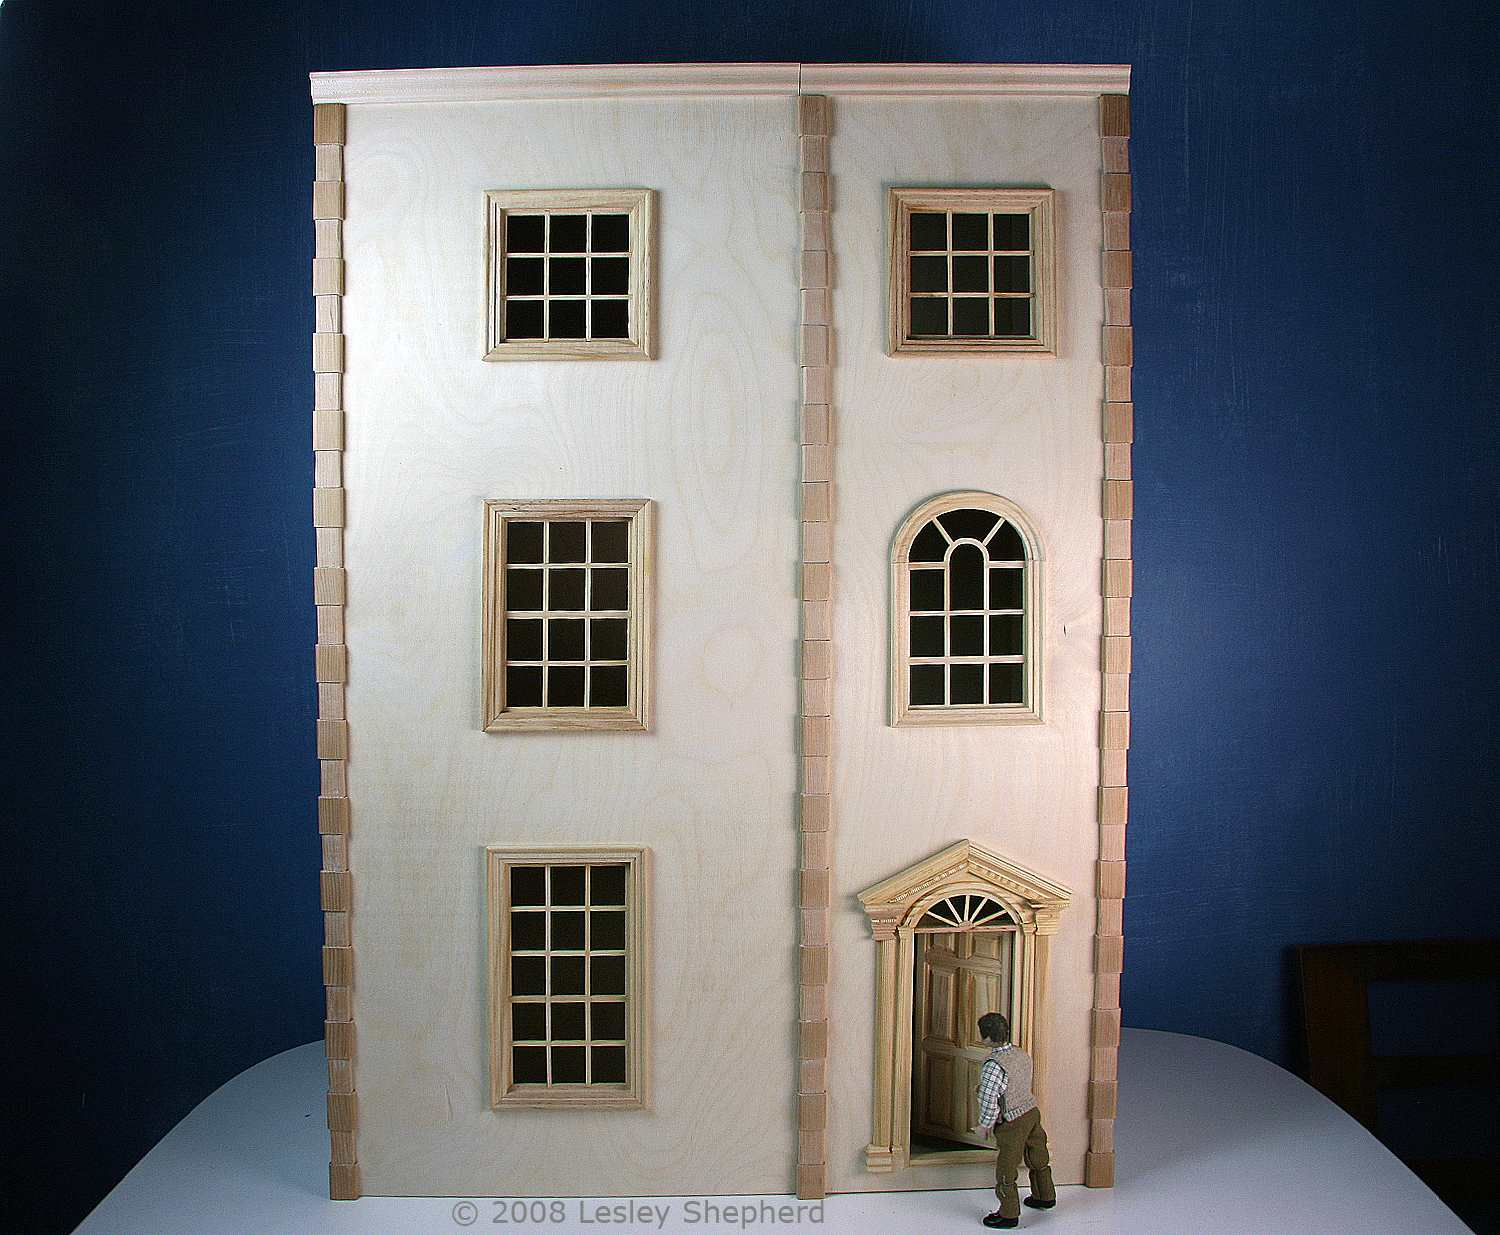 Simple front opening dollhouse finished with strip quoins and cornice trim.